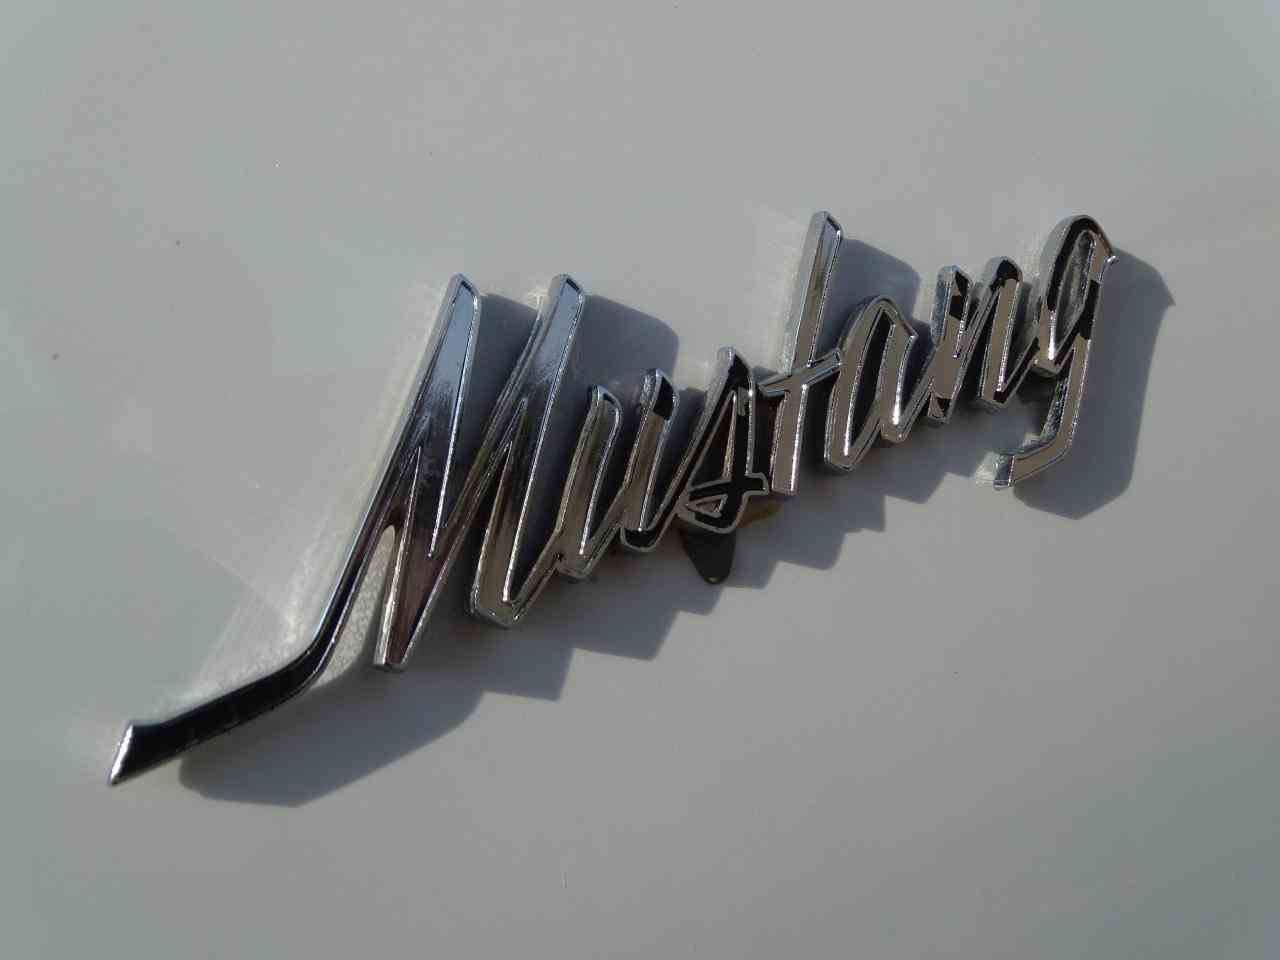 Large Picture of 1969 Ford Mustang located in Michigan - $16,995.00 Offered by Gateway Classic Cars - Detroit - MCZ4